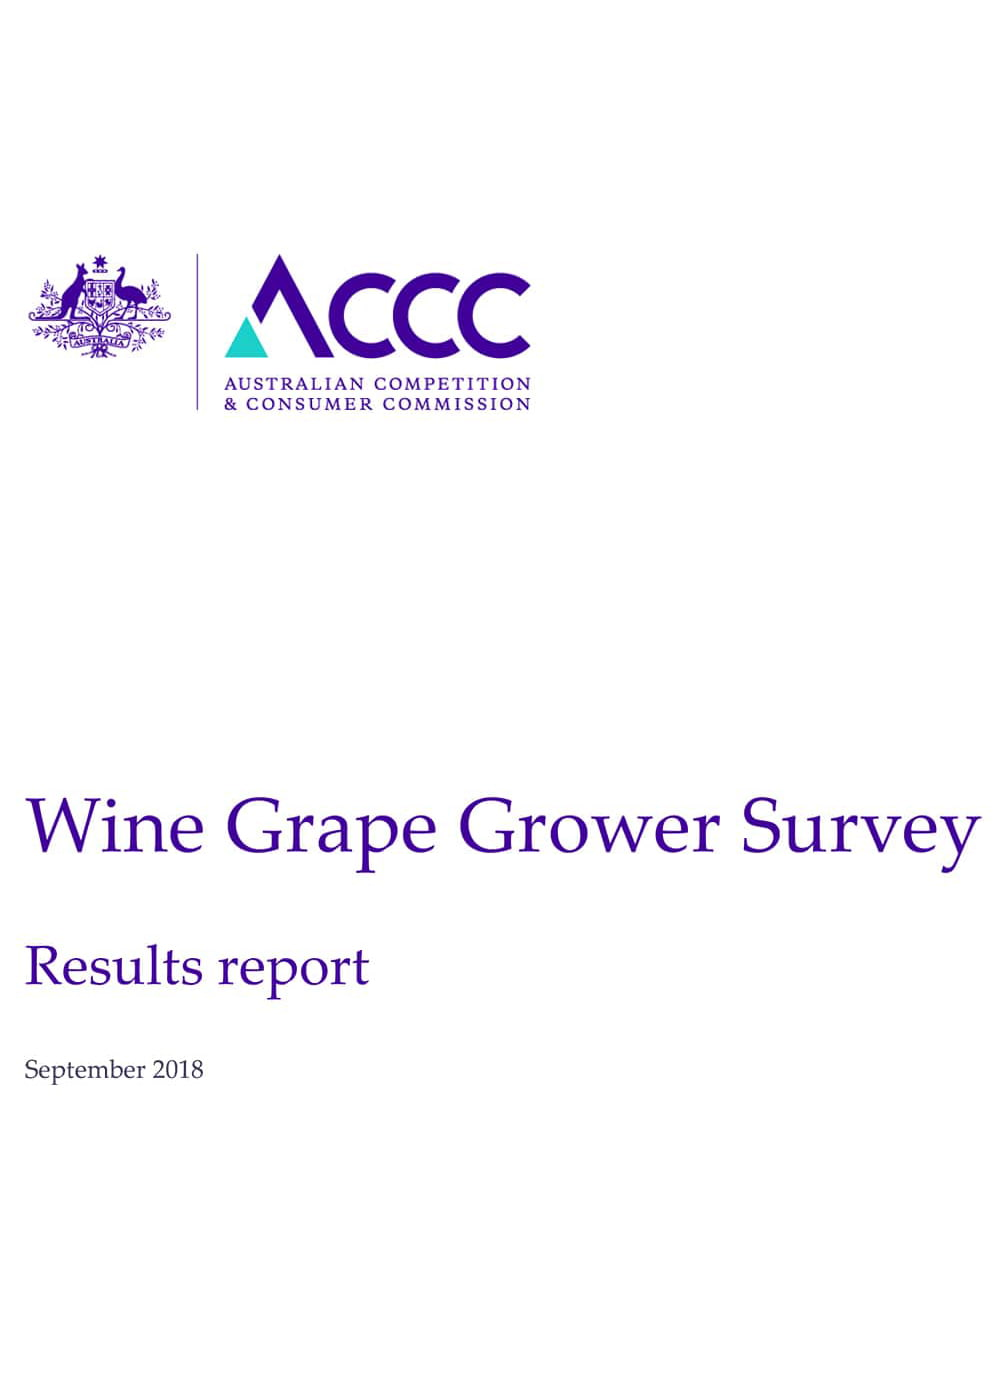 ACCC Wine Grape Grower Survey Results report